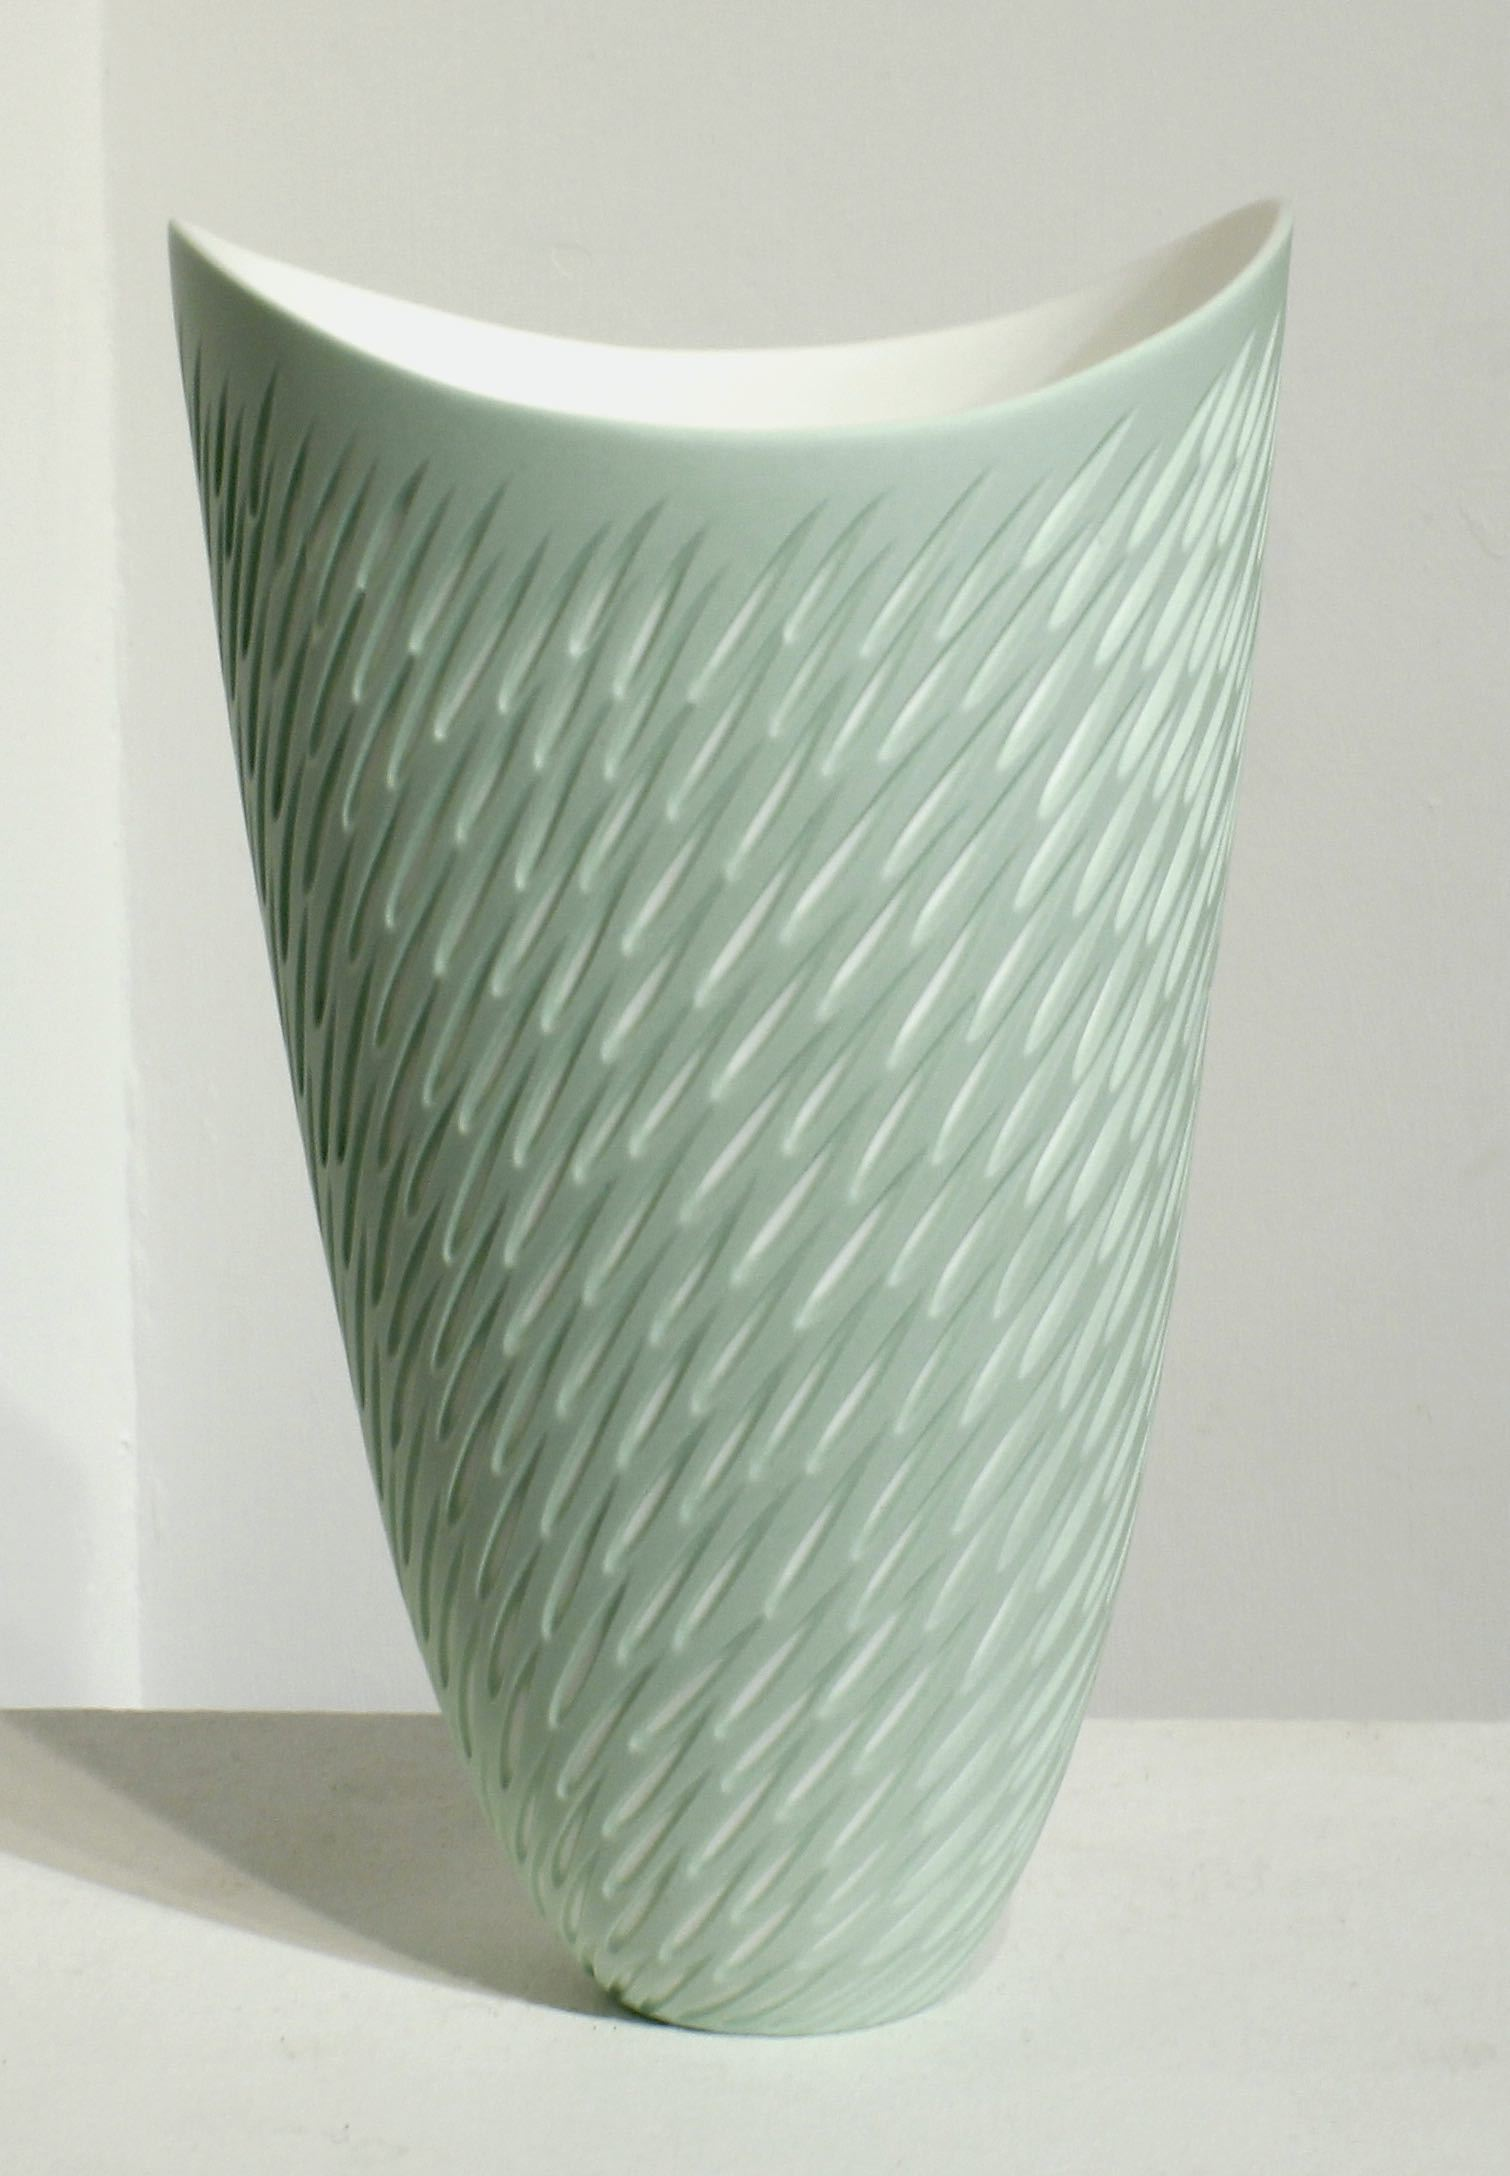 "<span class=""link fancybox-details-link""><a href=""/artists/60-sasha-wardell/works/5115-sasha-wardell-green-shoal-vase-2017/"">View Detail Page</a></span><div class=""artist""><strong>Sasha Wardell</strong></div> <div class=""title""><em>Green Shoal Vase </em>, 2017</div> <div class=""signed_and_dated"">inscribed with artist initials on base</div> <div class=""medium"">layered and sliced bone china</div> <div class=""dimensions"">h. 25 x w. 15 x d. 12 cm</div>"